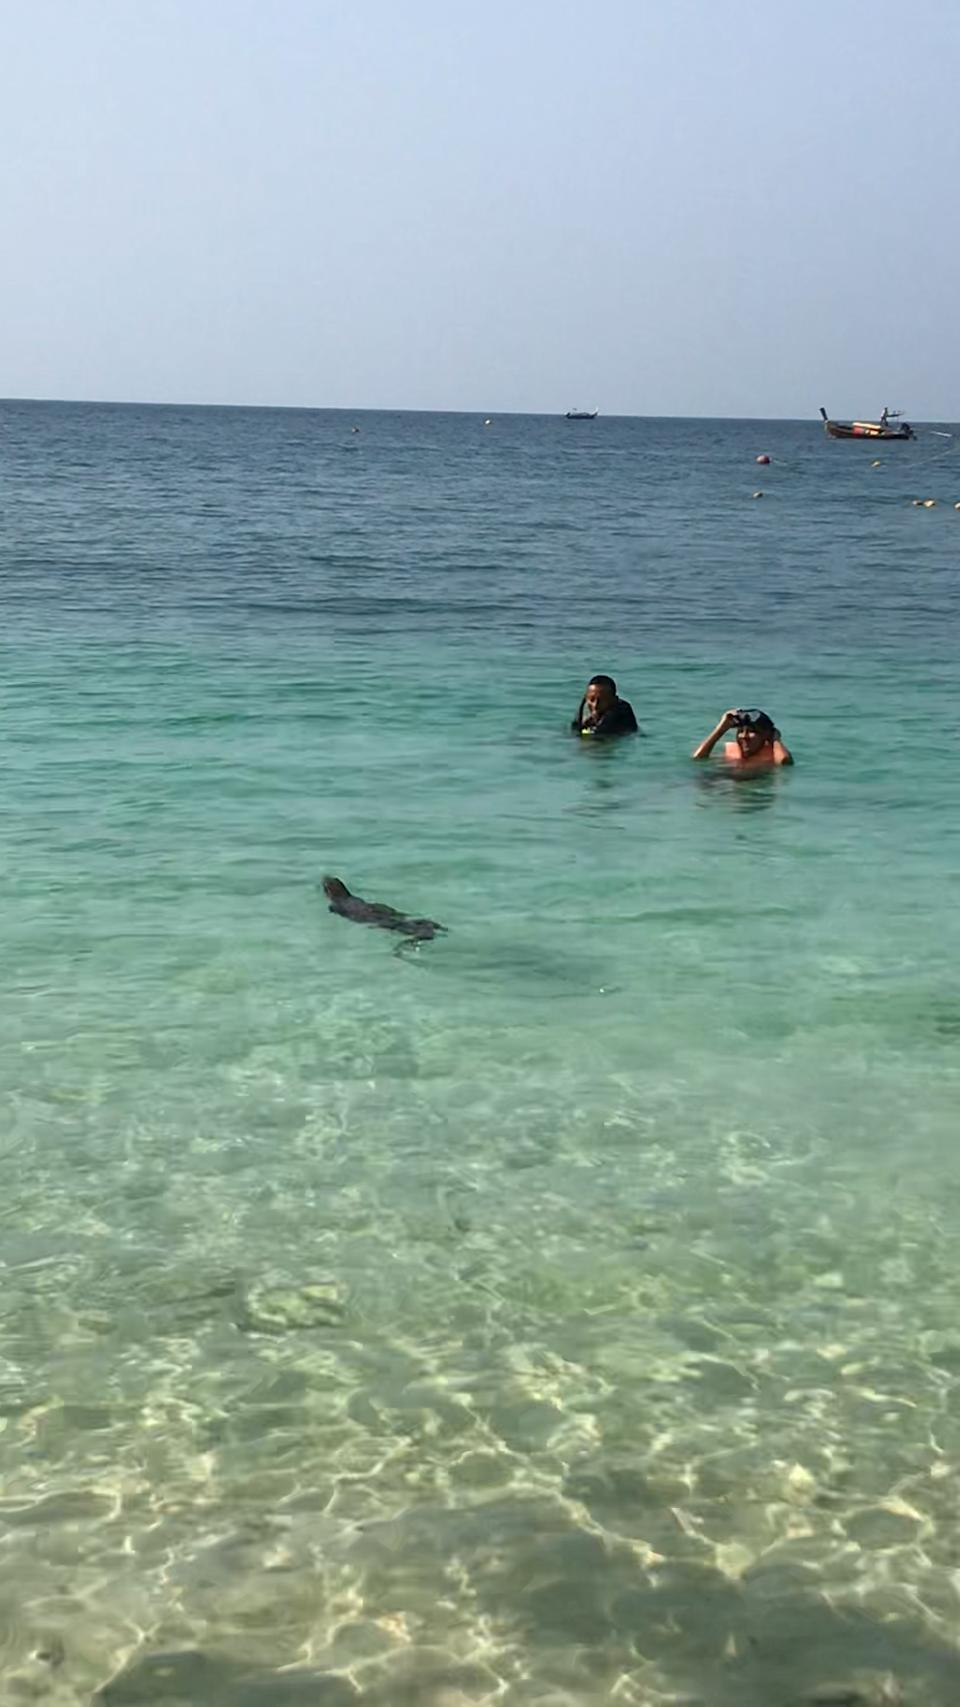 The large monitor lizard swam metres away from tourists. Source: Viral Press/Australscope